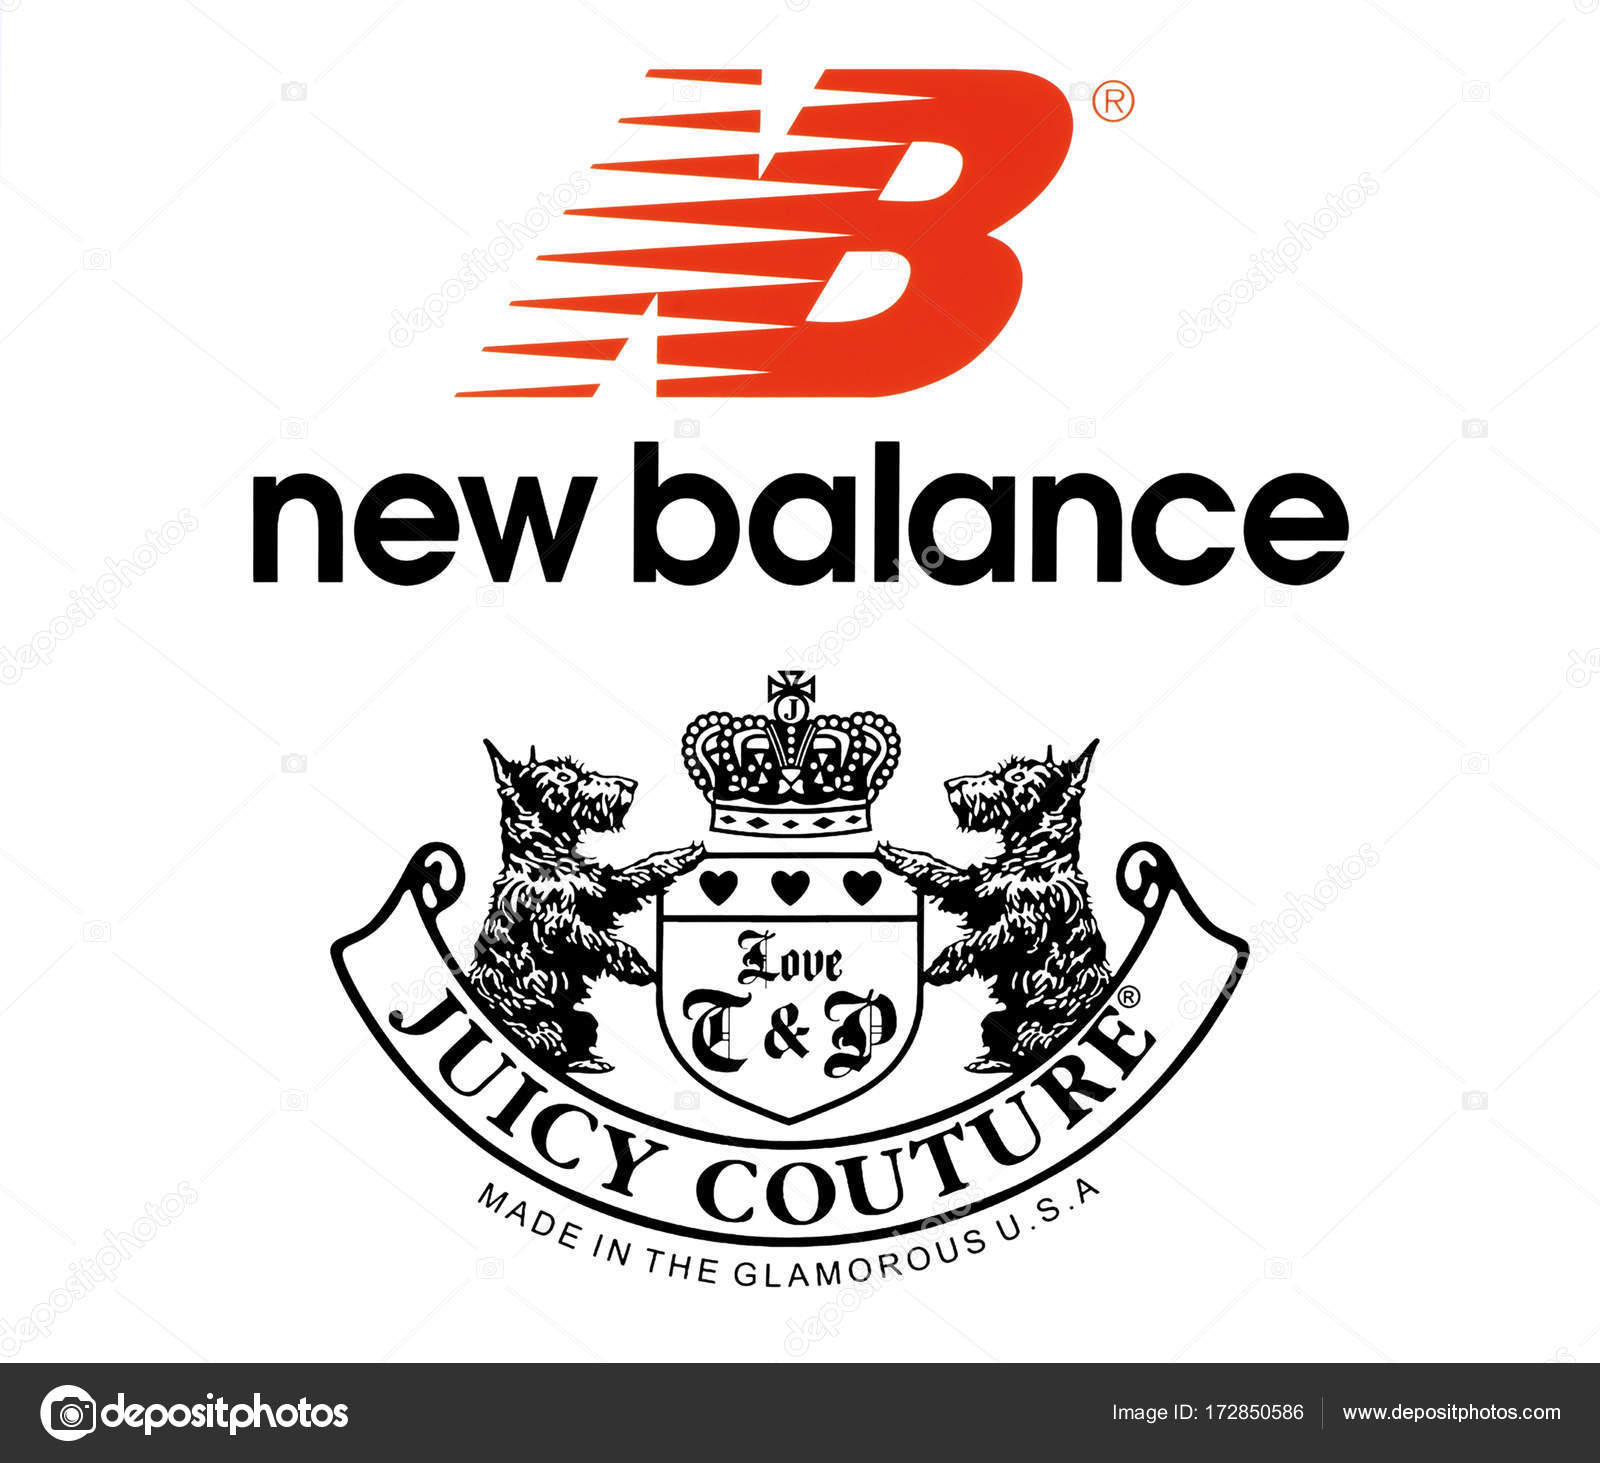 Collection Of Popular Sportswear Manufactures Logos Stock